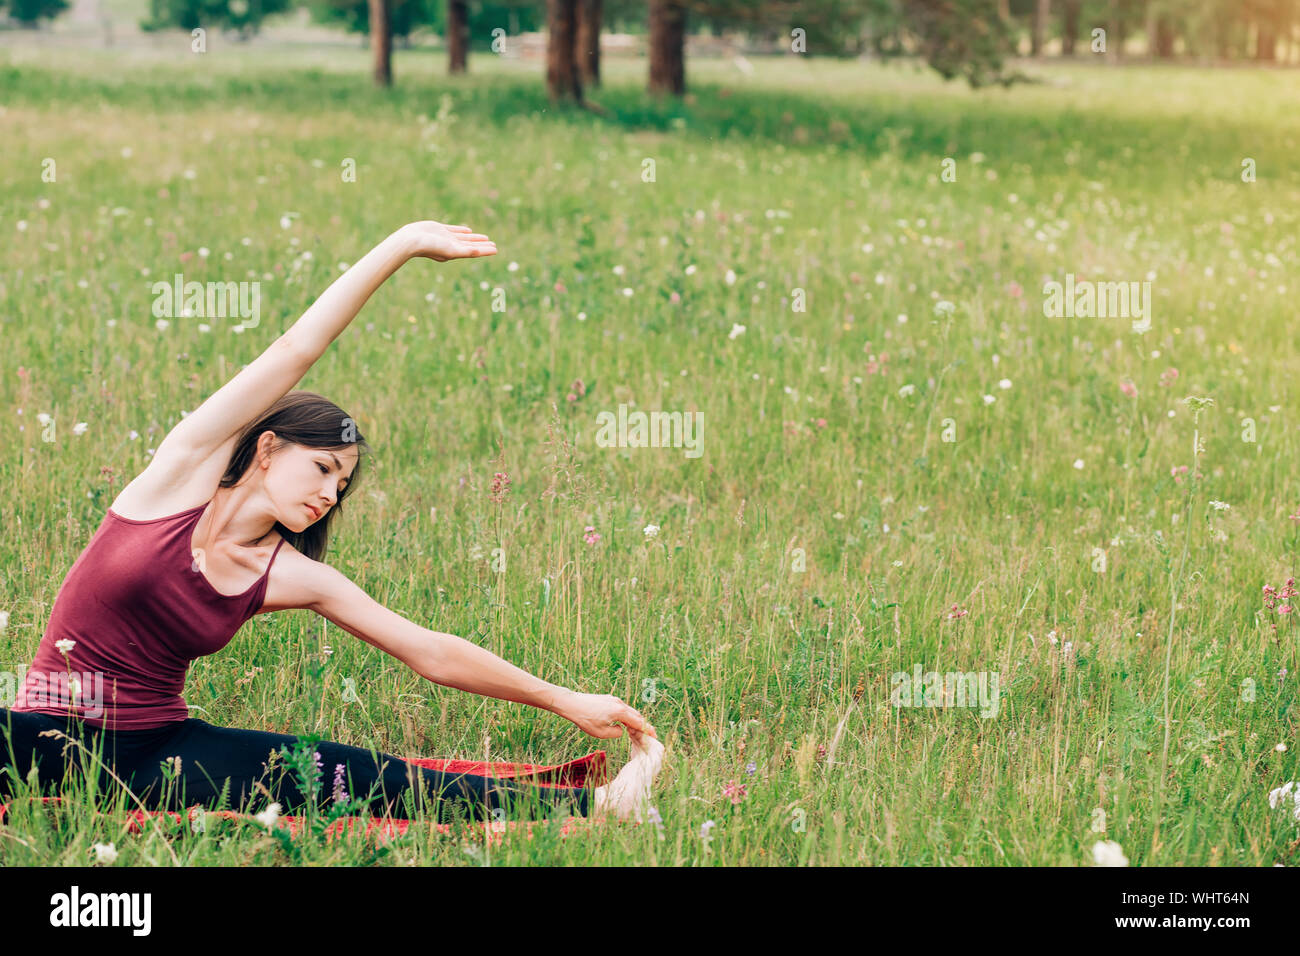 Yoga And Meditation In Nature On A Sunny Day Beautiful Woman In Burgundy Top On The Background Of Fields And Forests Copy Space Stock Photo Alamy